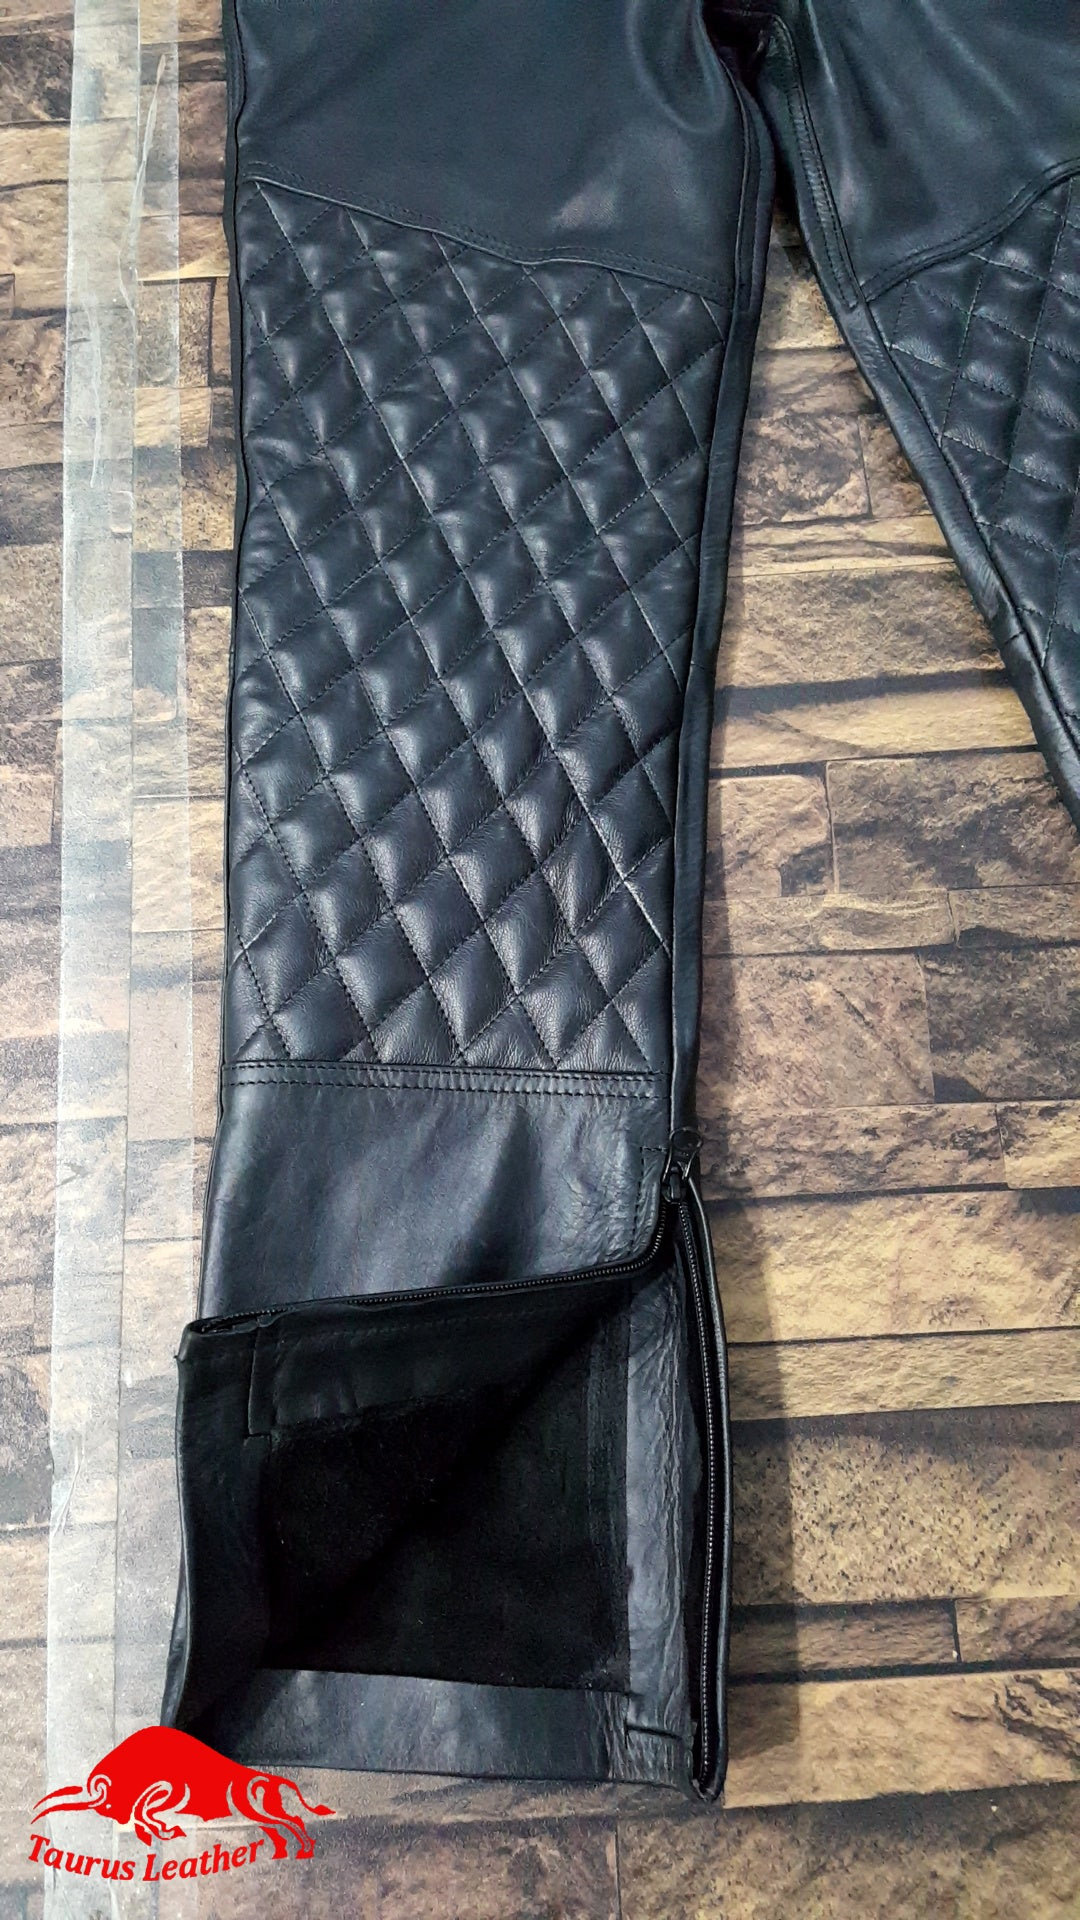 TAURUS LEATHER Black Cow Leather Pant